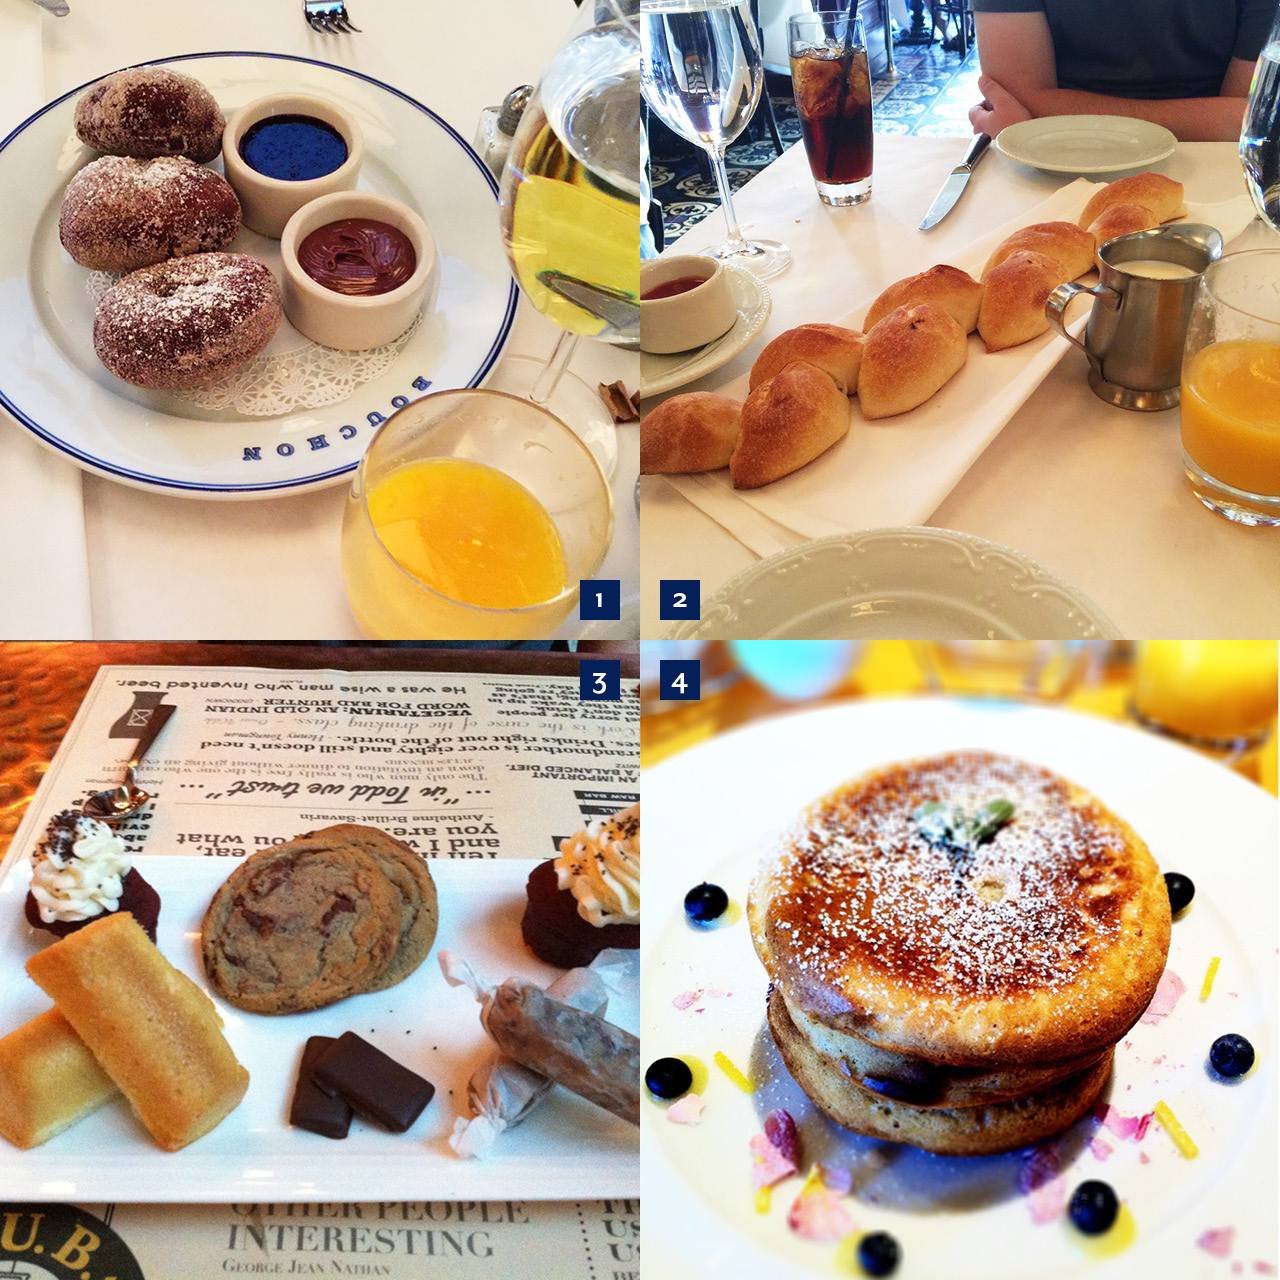 1. Cinnamon spiced beignets with Nutella and berry jam and 2) world's best baguette at Bouchon; 3. the desserts at P.U.B.; 4. lemon ricotta pancakes with rose water syrup at the Vdara's house restaurant.